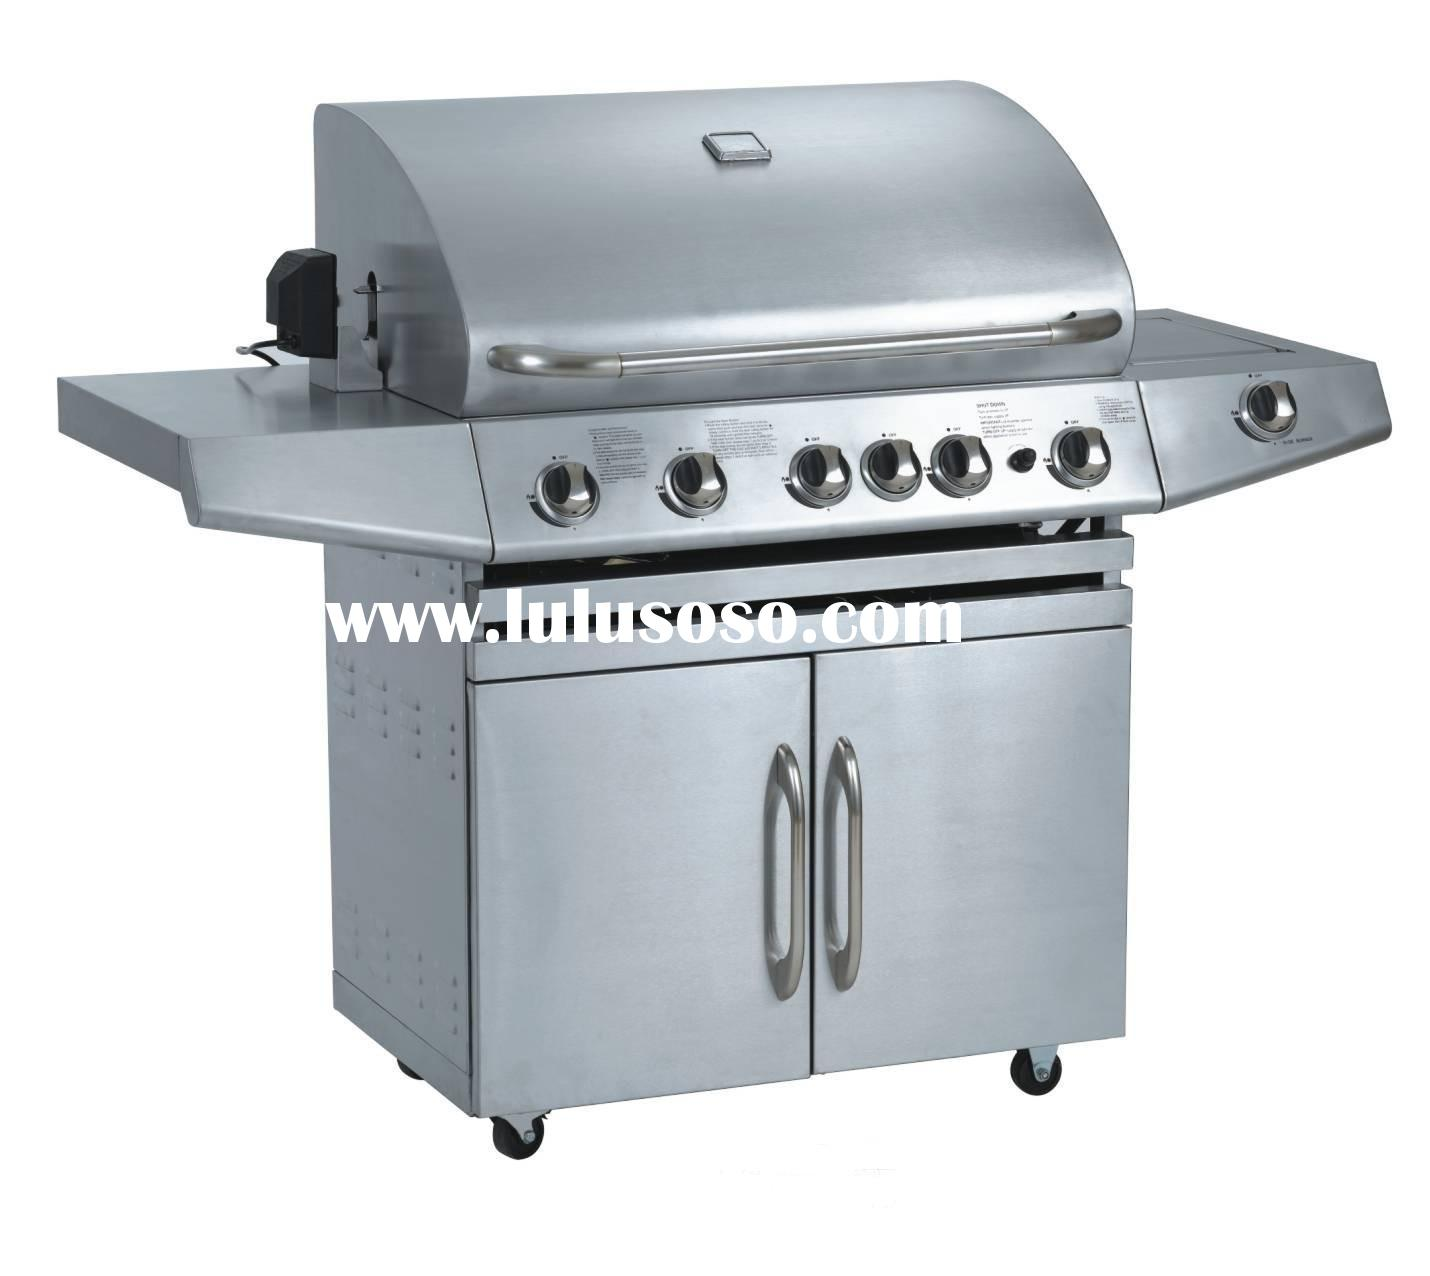 Outdoor stainless steel 5-burners with infrared burner GAS BBQ grill